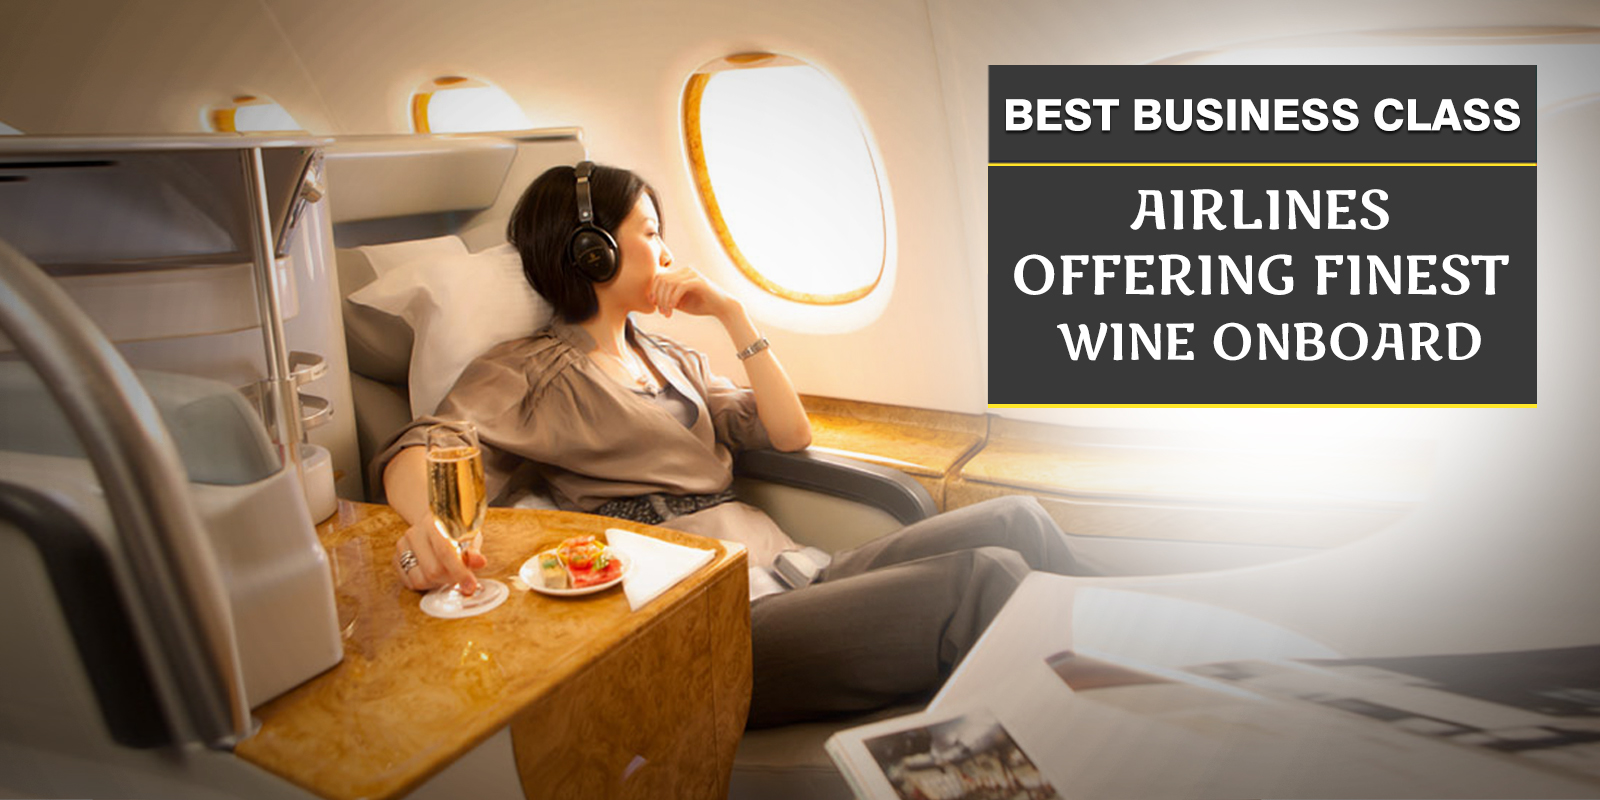 Best Business Class Airlines Offering Finest Wine Onboard